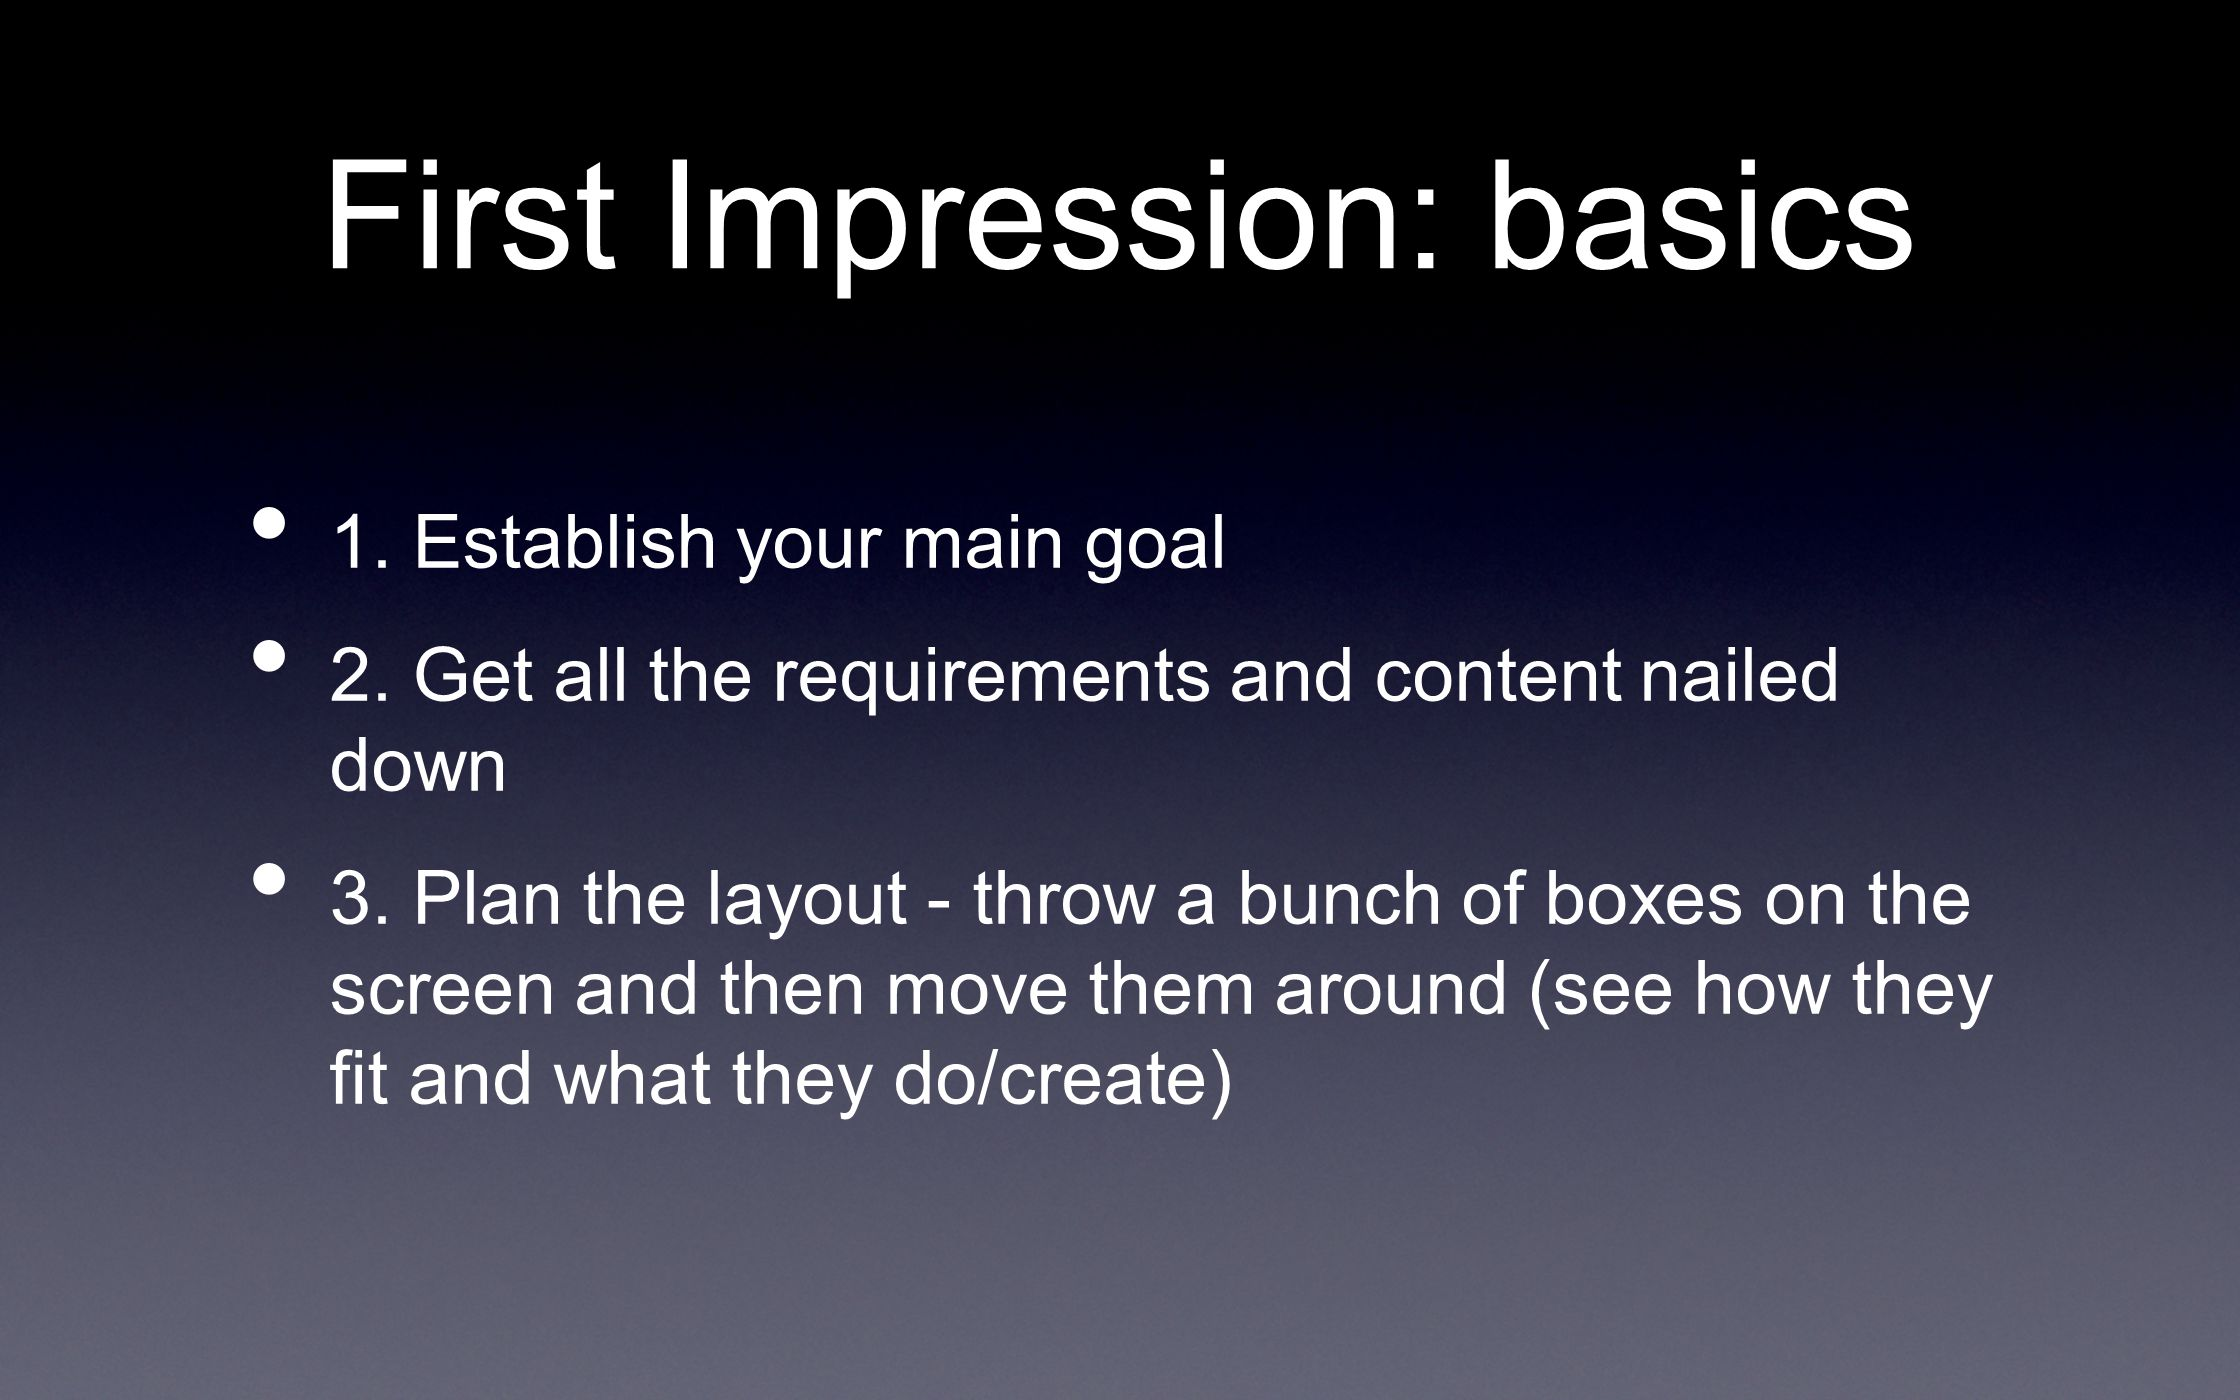 First Impression: basics 1. Establish your main goal 2. Get all the requirements and content nailed down 3. Plan the layout - throw a bunch of boxes o